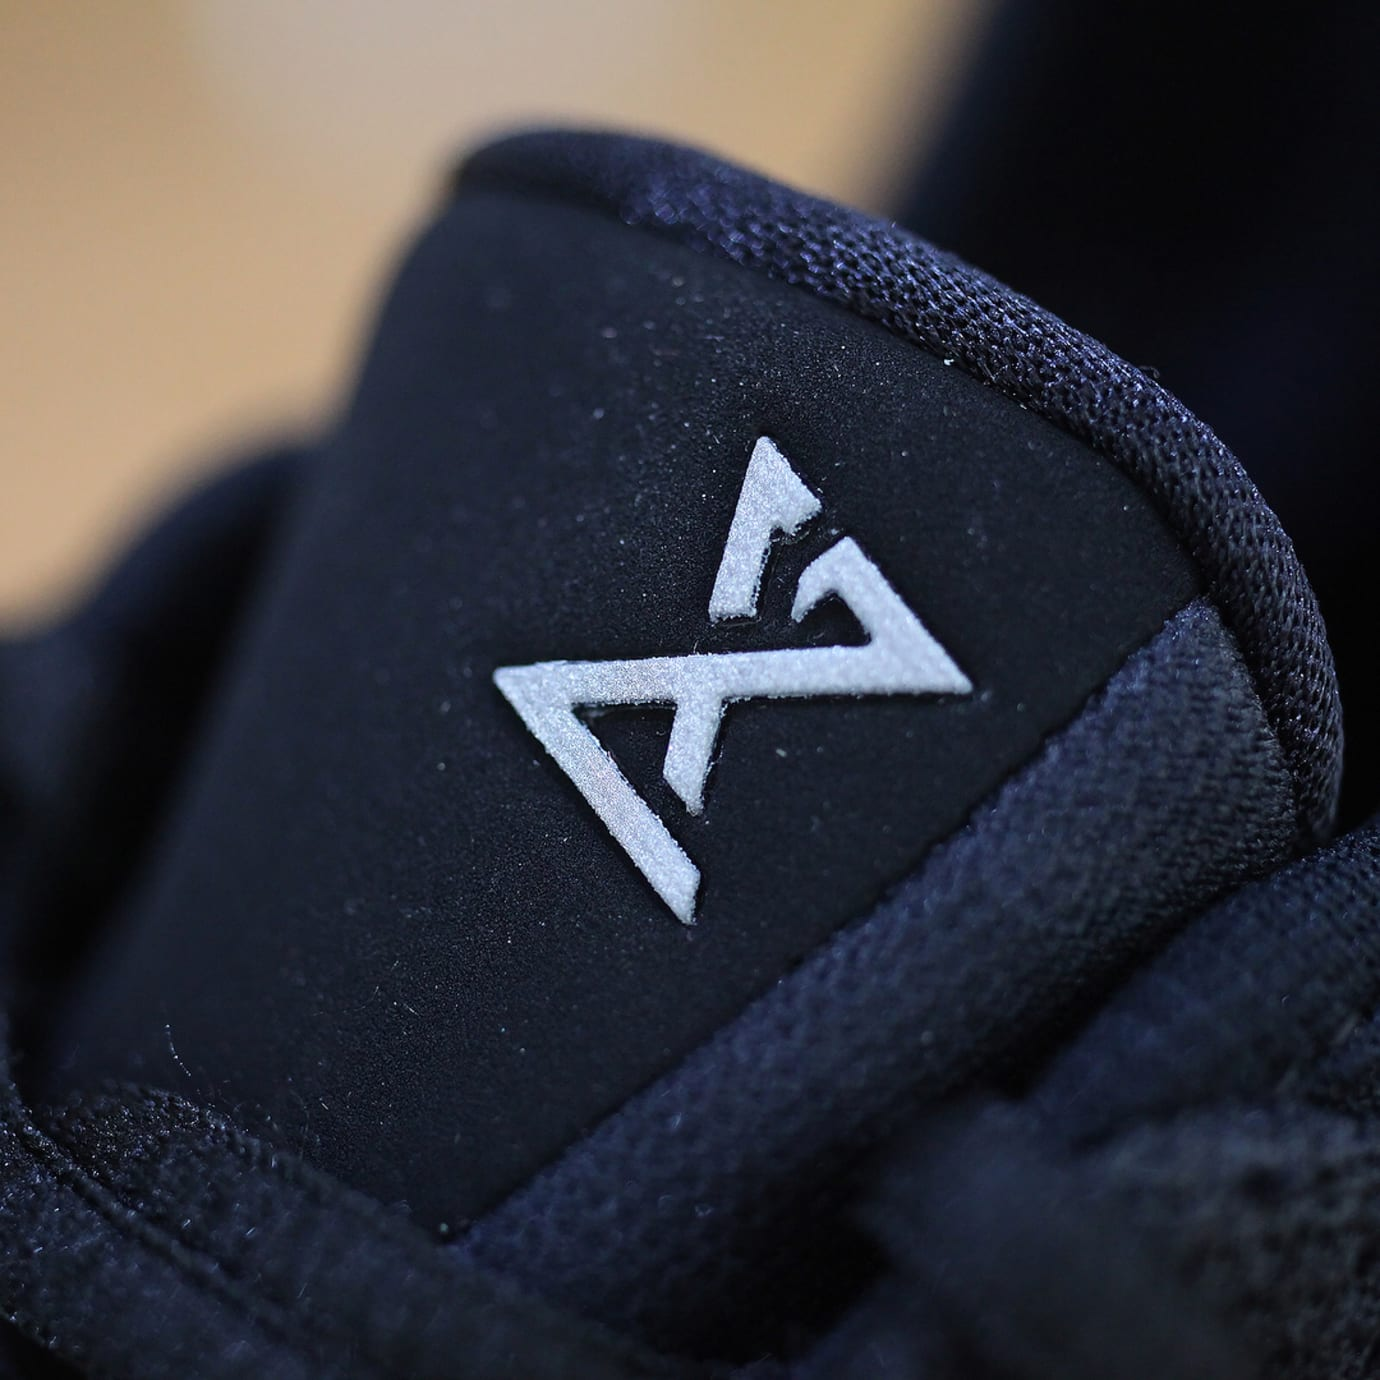 Nike PG 2.5 'Black/Pure Platinum/Anthracite' BQ8452-004 (Tongue Detail)